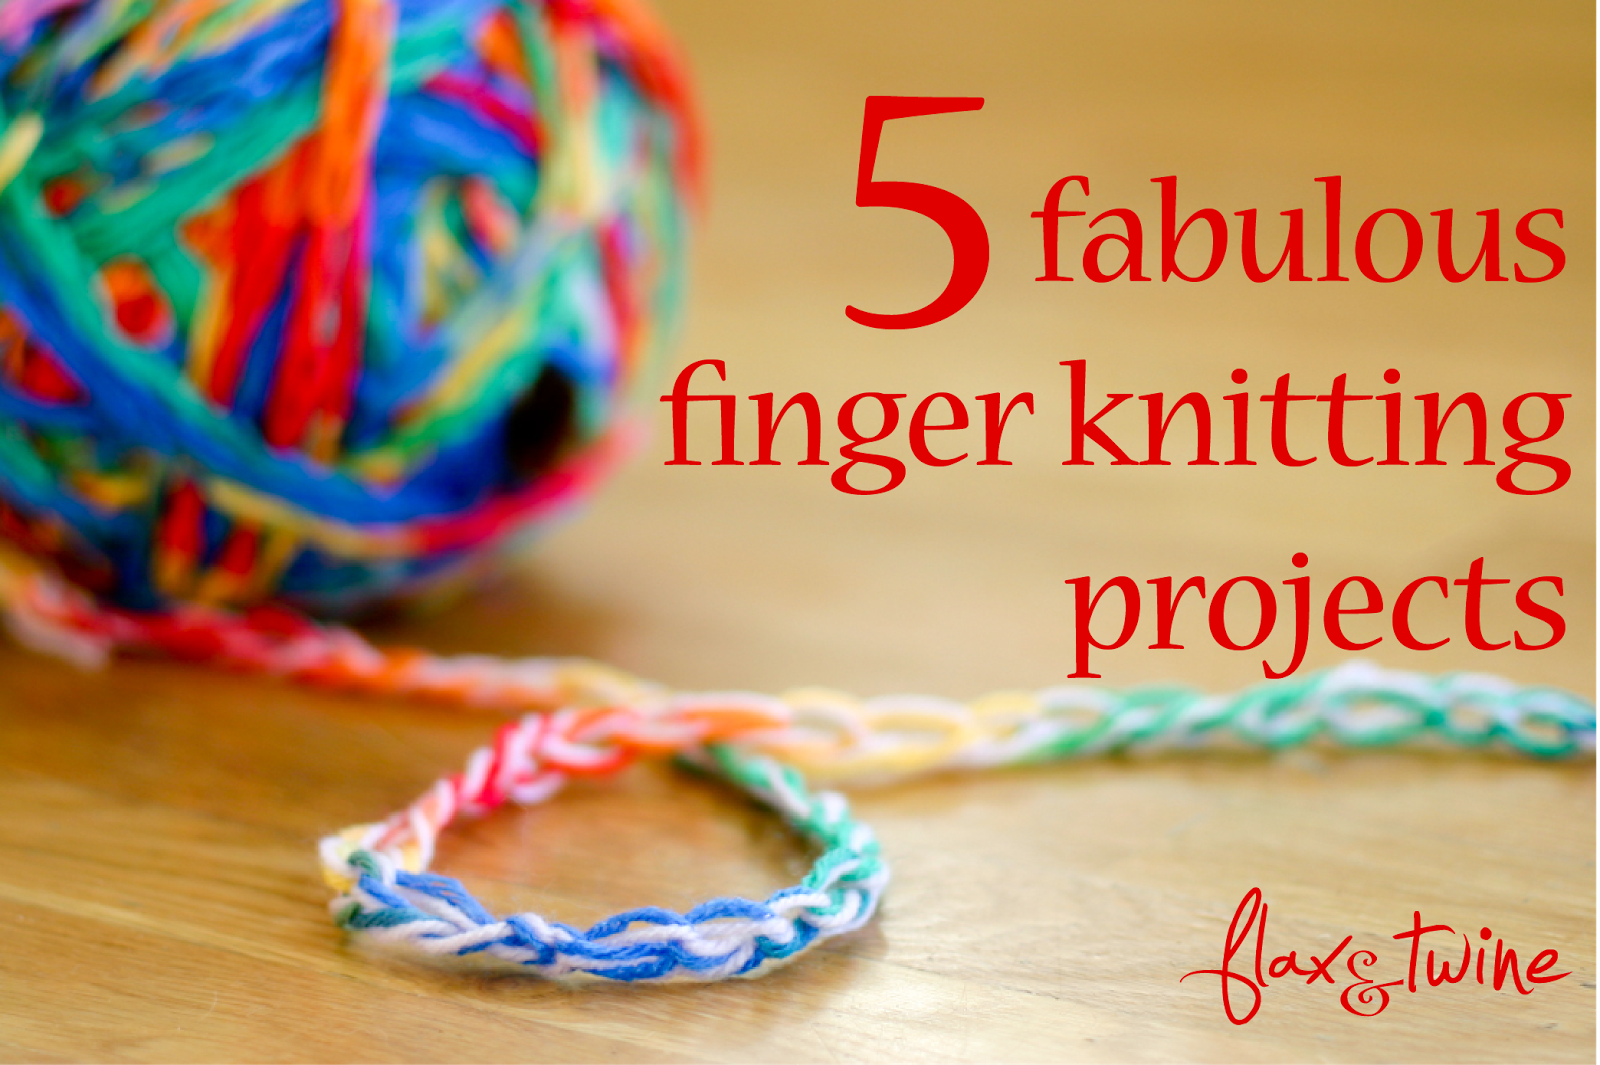 Five Fab Finger Knitting Projects